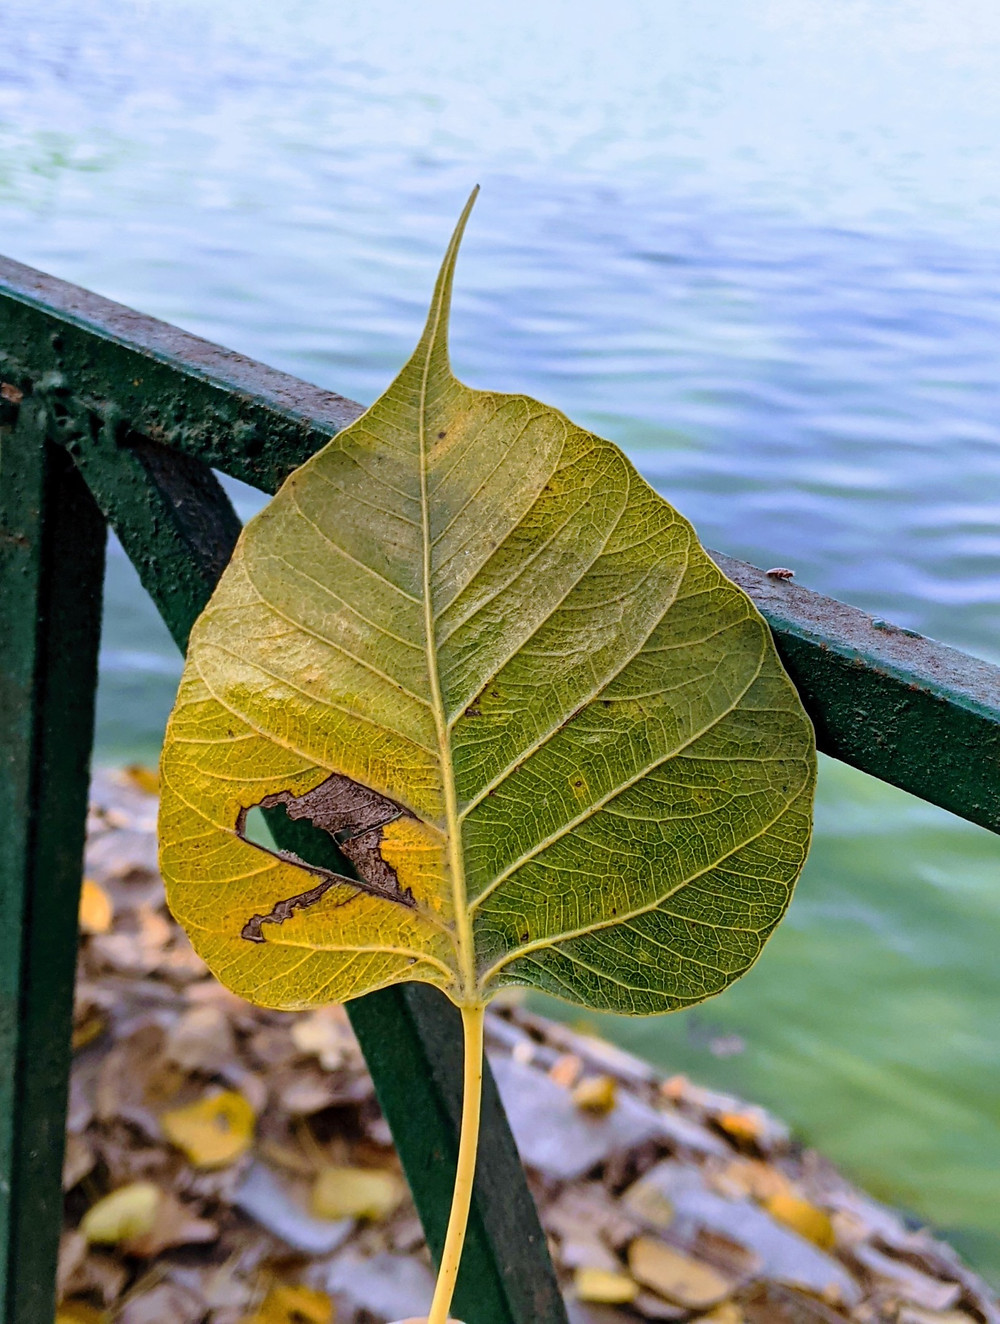 A leaf full of life on one side and beginning to rot on the other